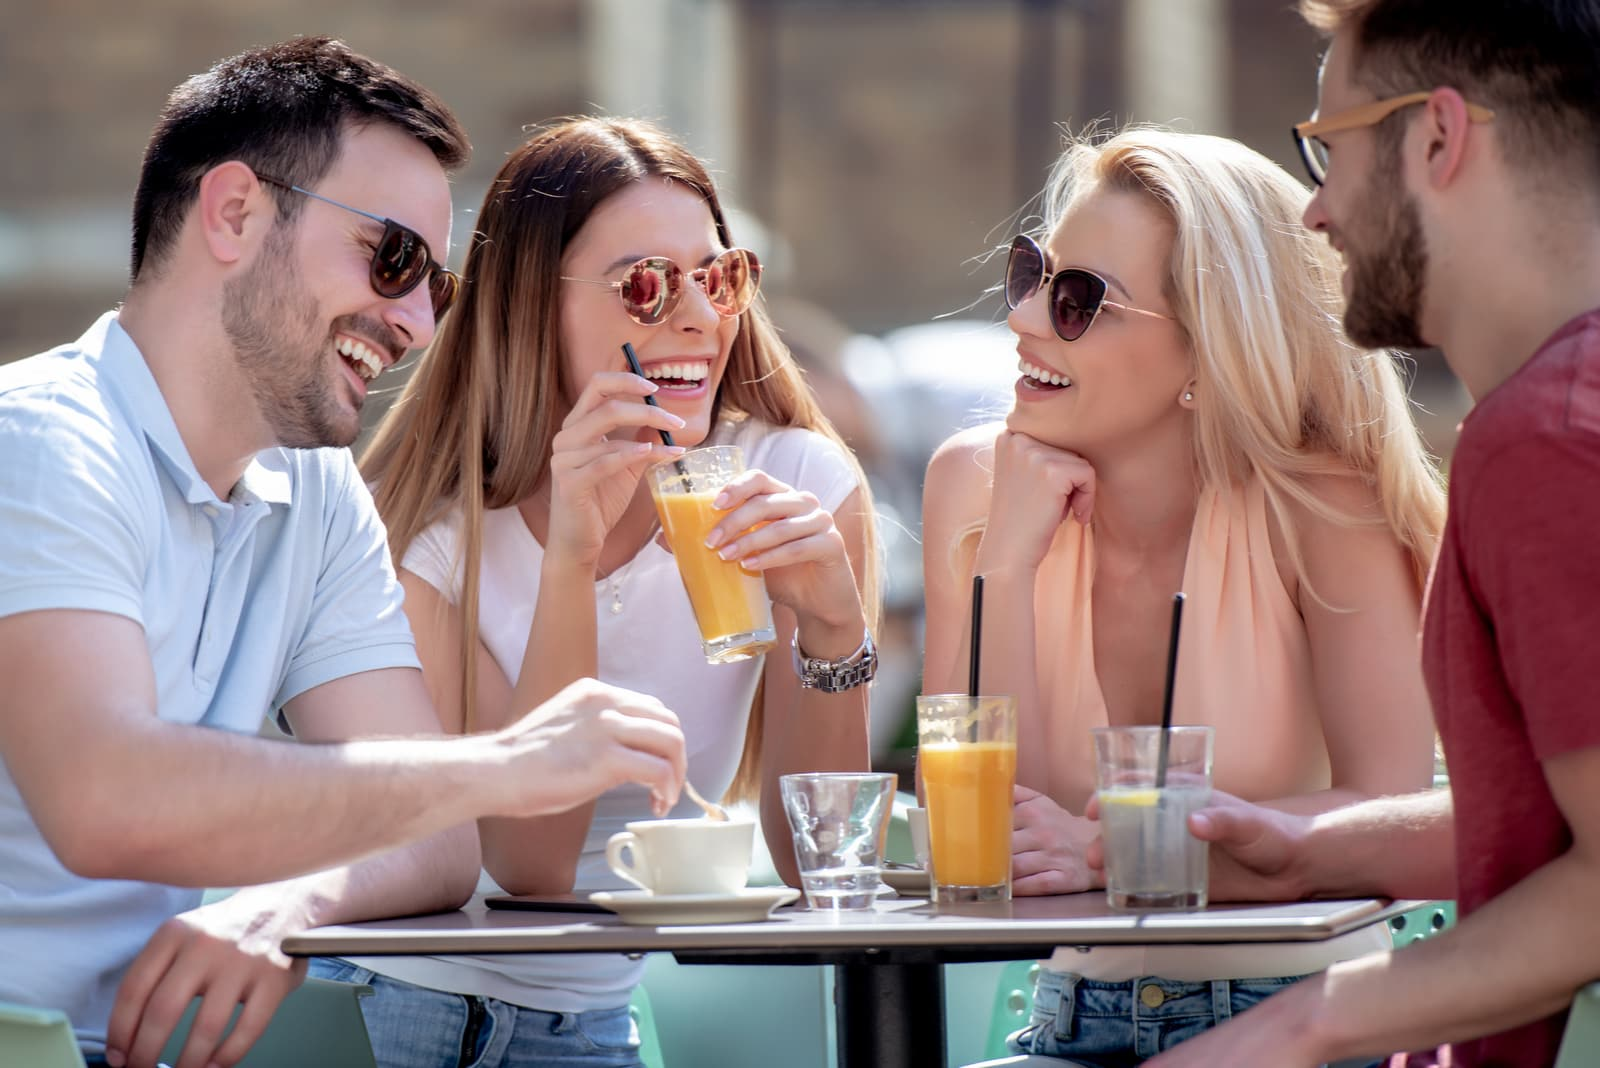 four friends having fun at a coffee shop together